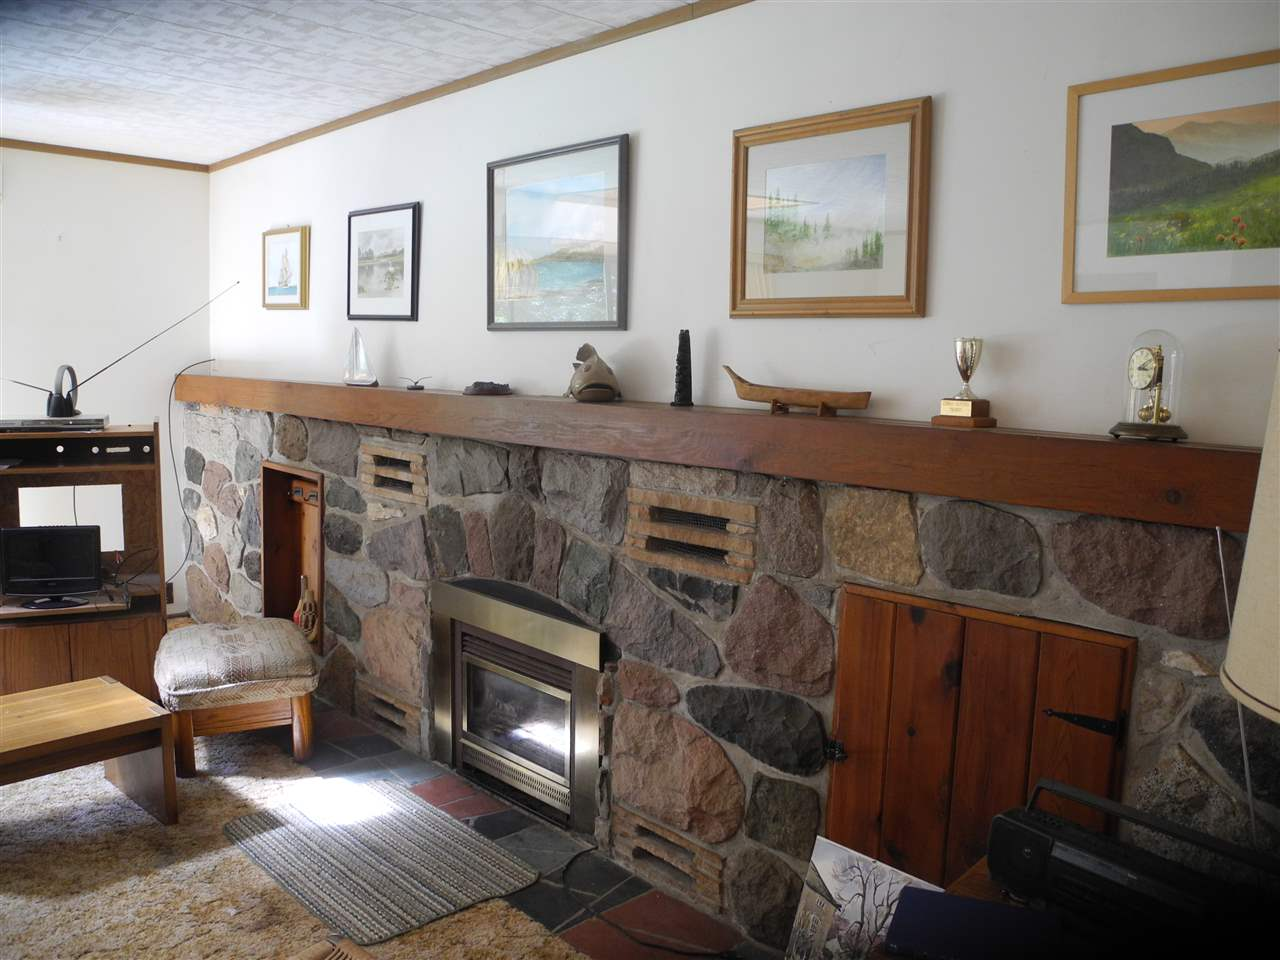 Photo 5: 1440 HENDERSON Road: Roberts Creek House for sale (Sunshine Coast)  : MLS® # R2154015